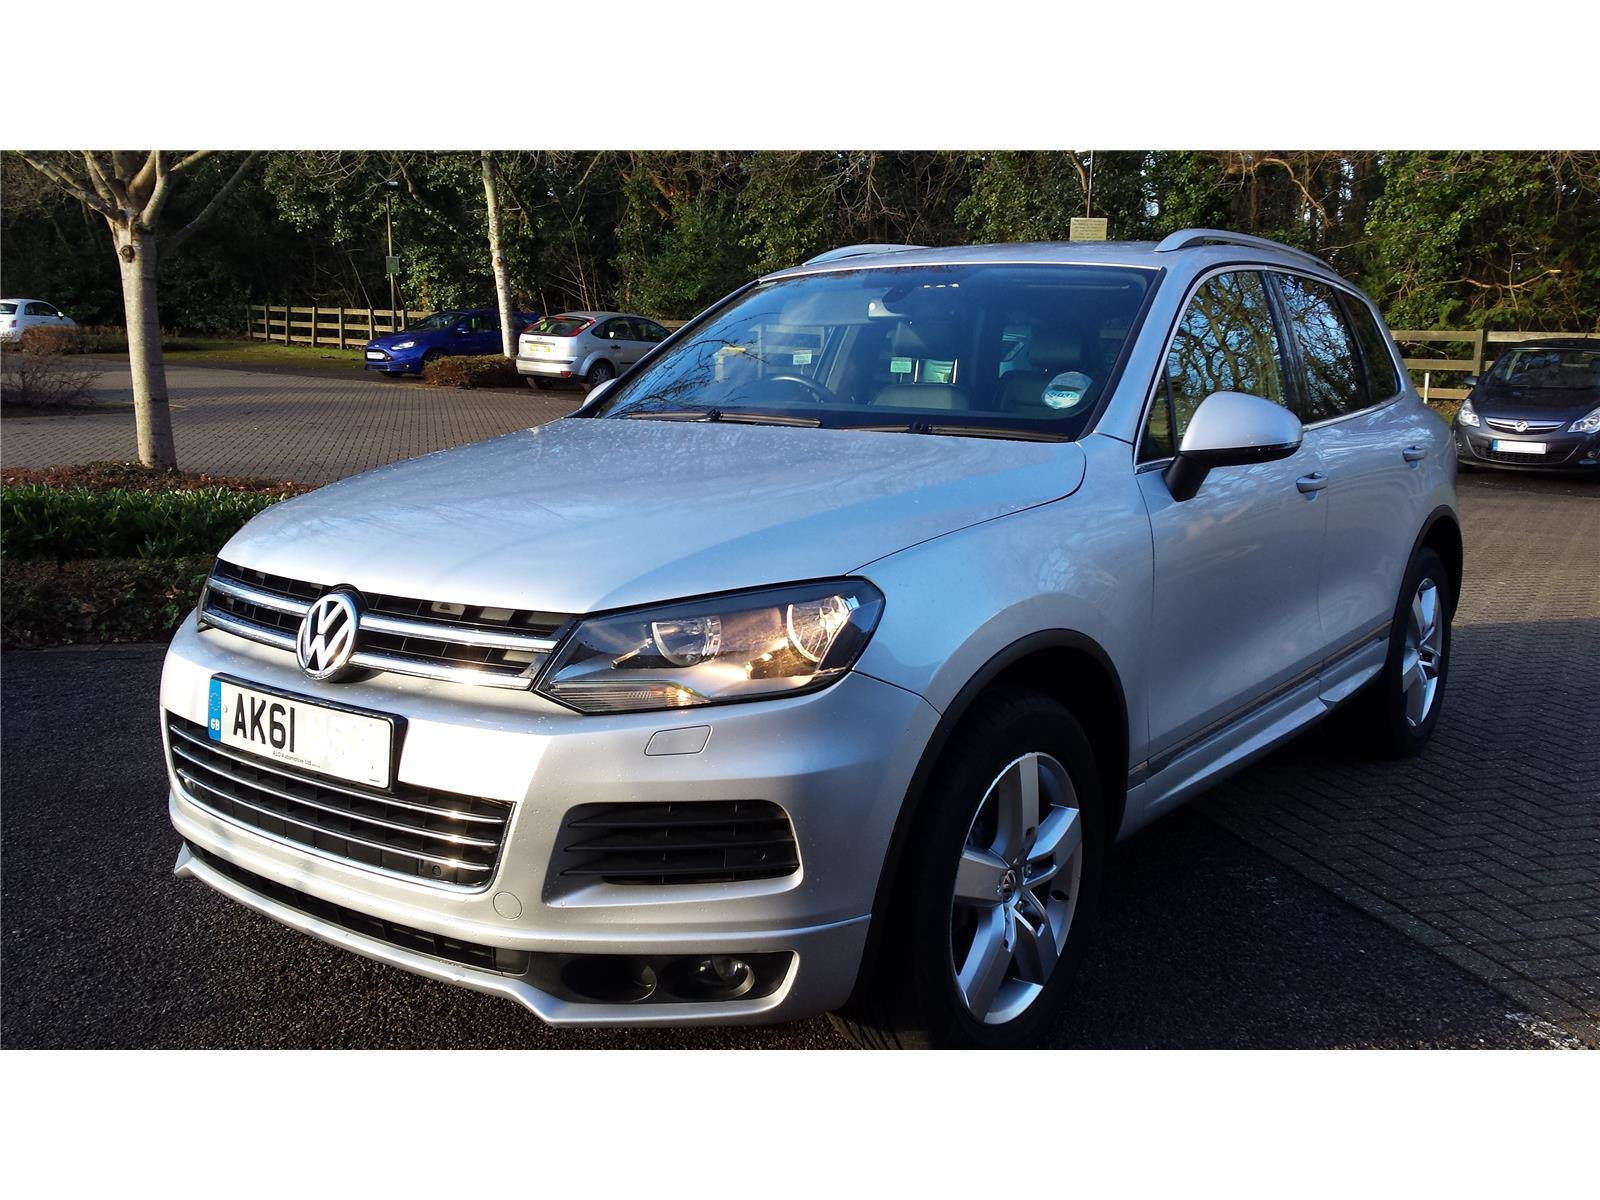 Volkswagen Touareg 2010 To 2014 Altitude 242 BlueMotion Techno 5 Door 4x4